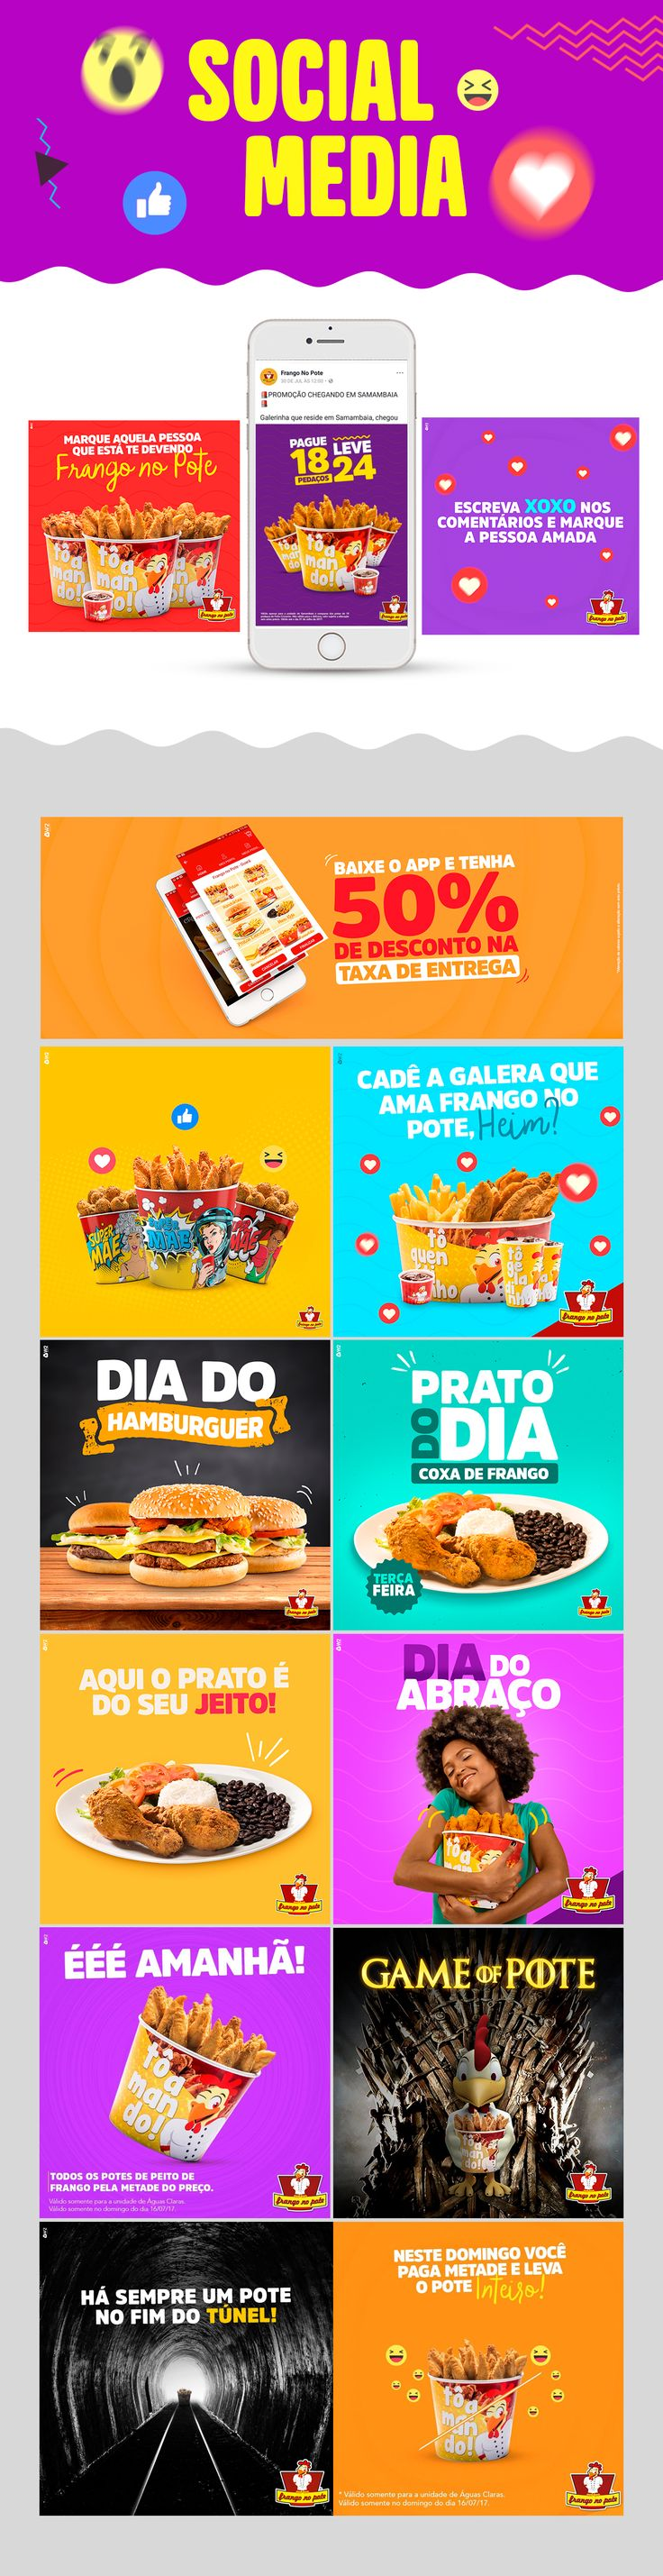 """Check out this @Behance project: """"Social Media - Frango no Pote"""" https://www.behance.net/gallery/55316407/Social-Media-Frango-no-Pote"""